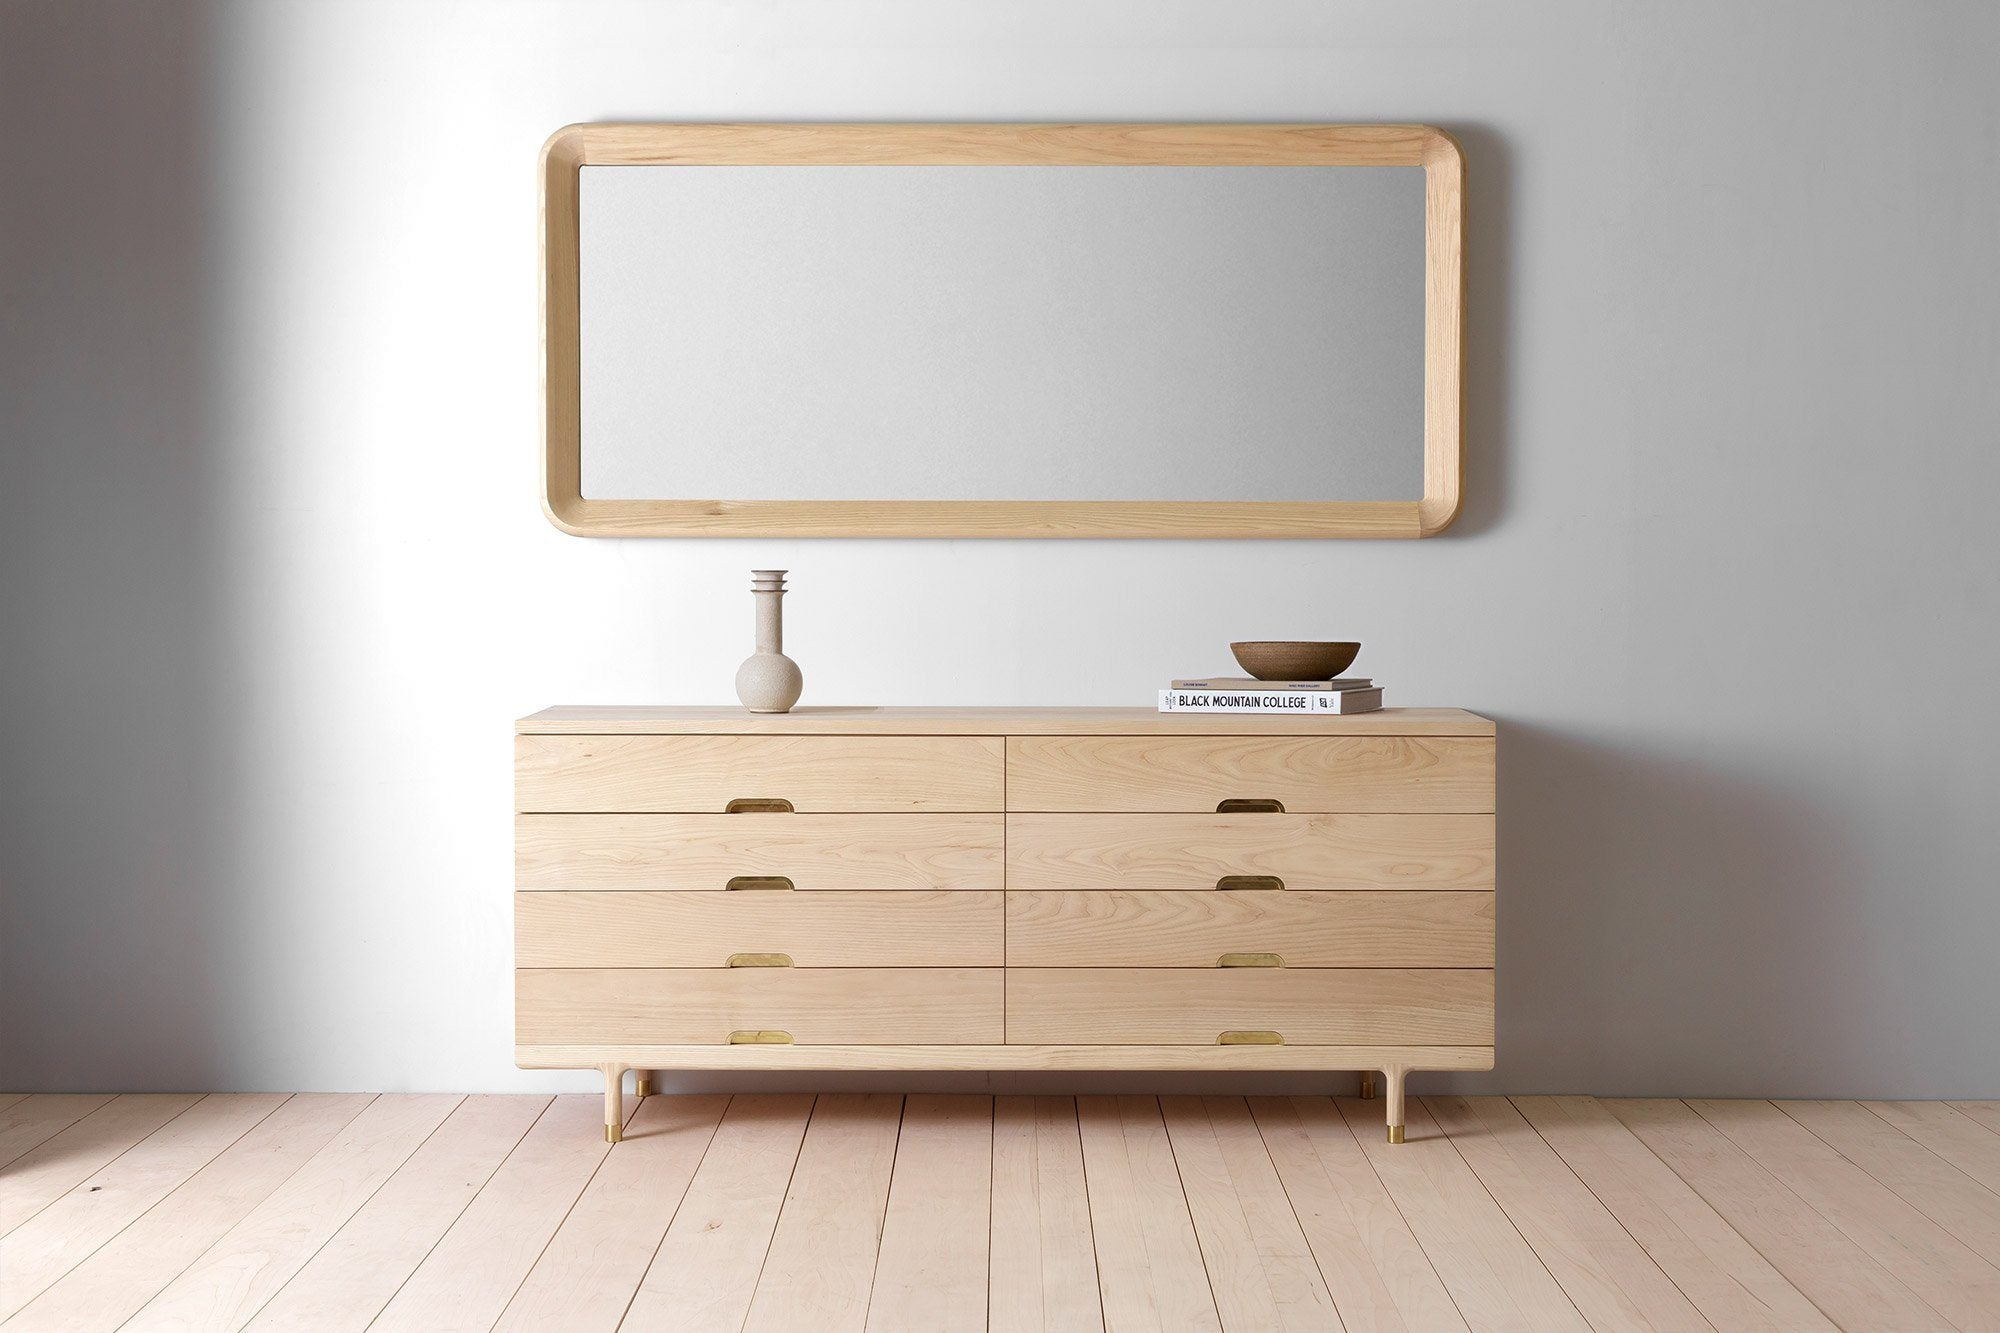 Kalon Simple Mirror